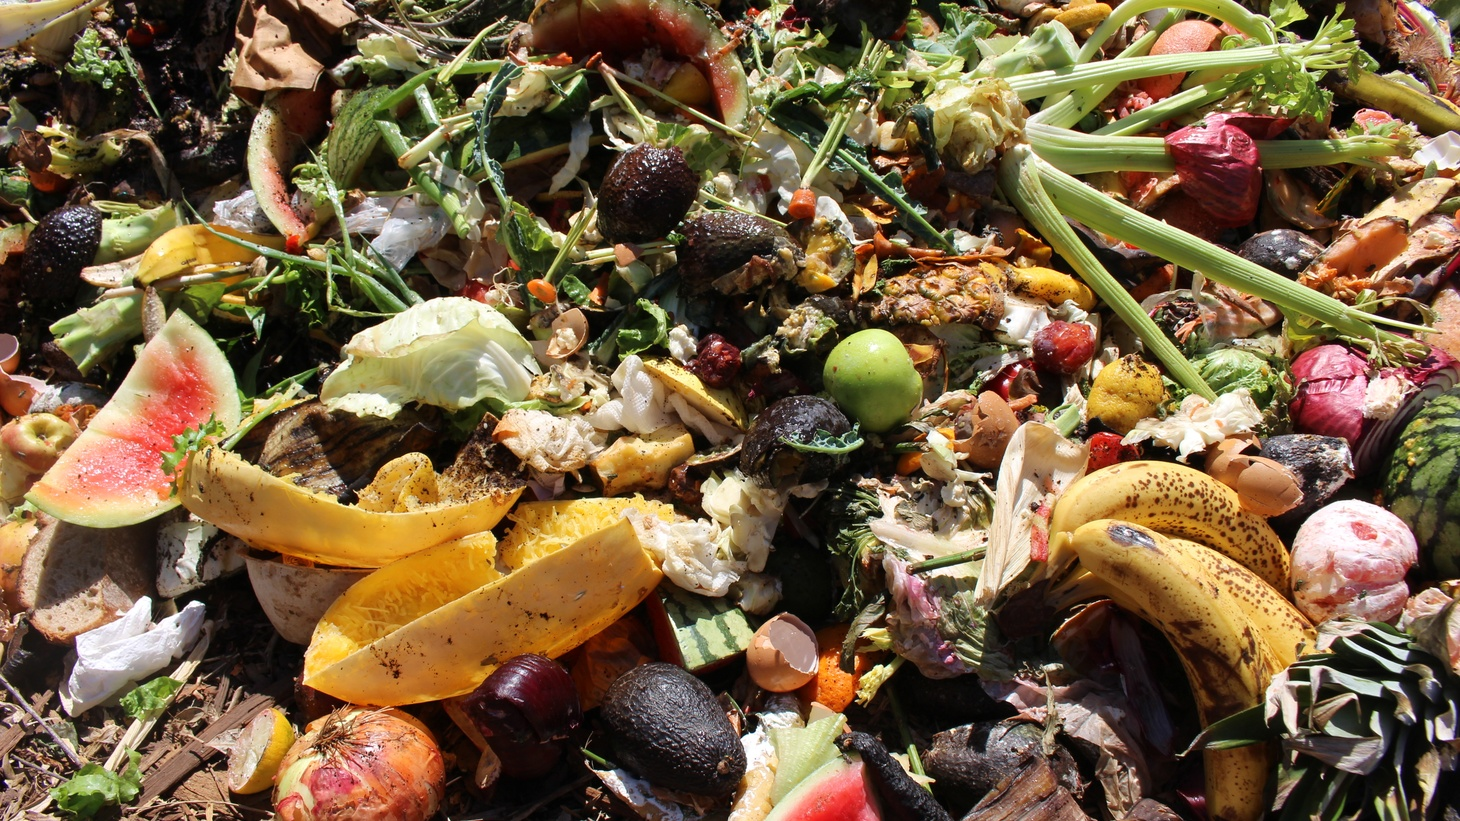 Most food scraps in California are still getting buried in landfills and contributing to climate change. A state law aims to change that.